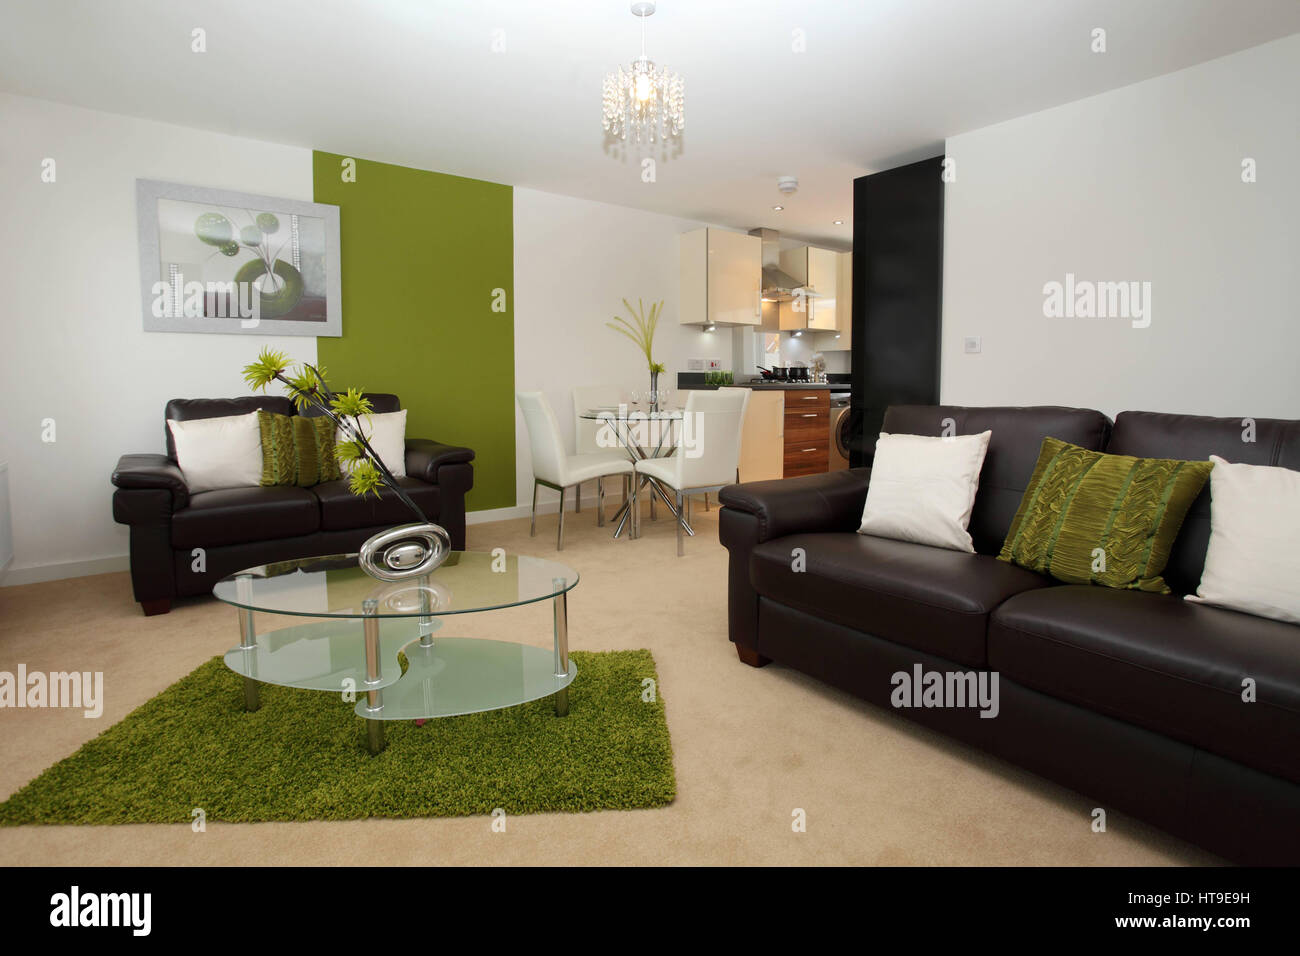 Apartment interior, modern lounge/kitchen/diner, living room, space, dining area, green rug, glass coffee table, - Stock Image